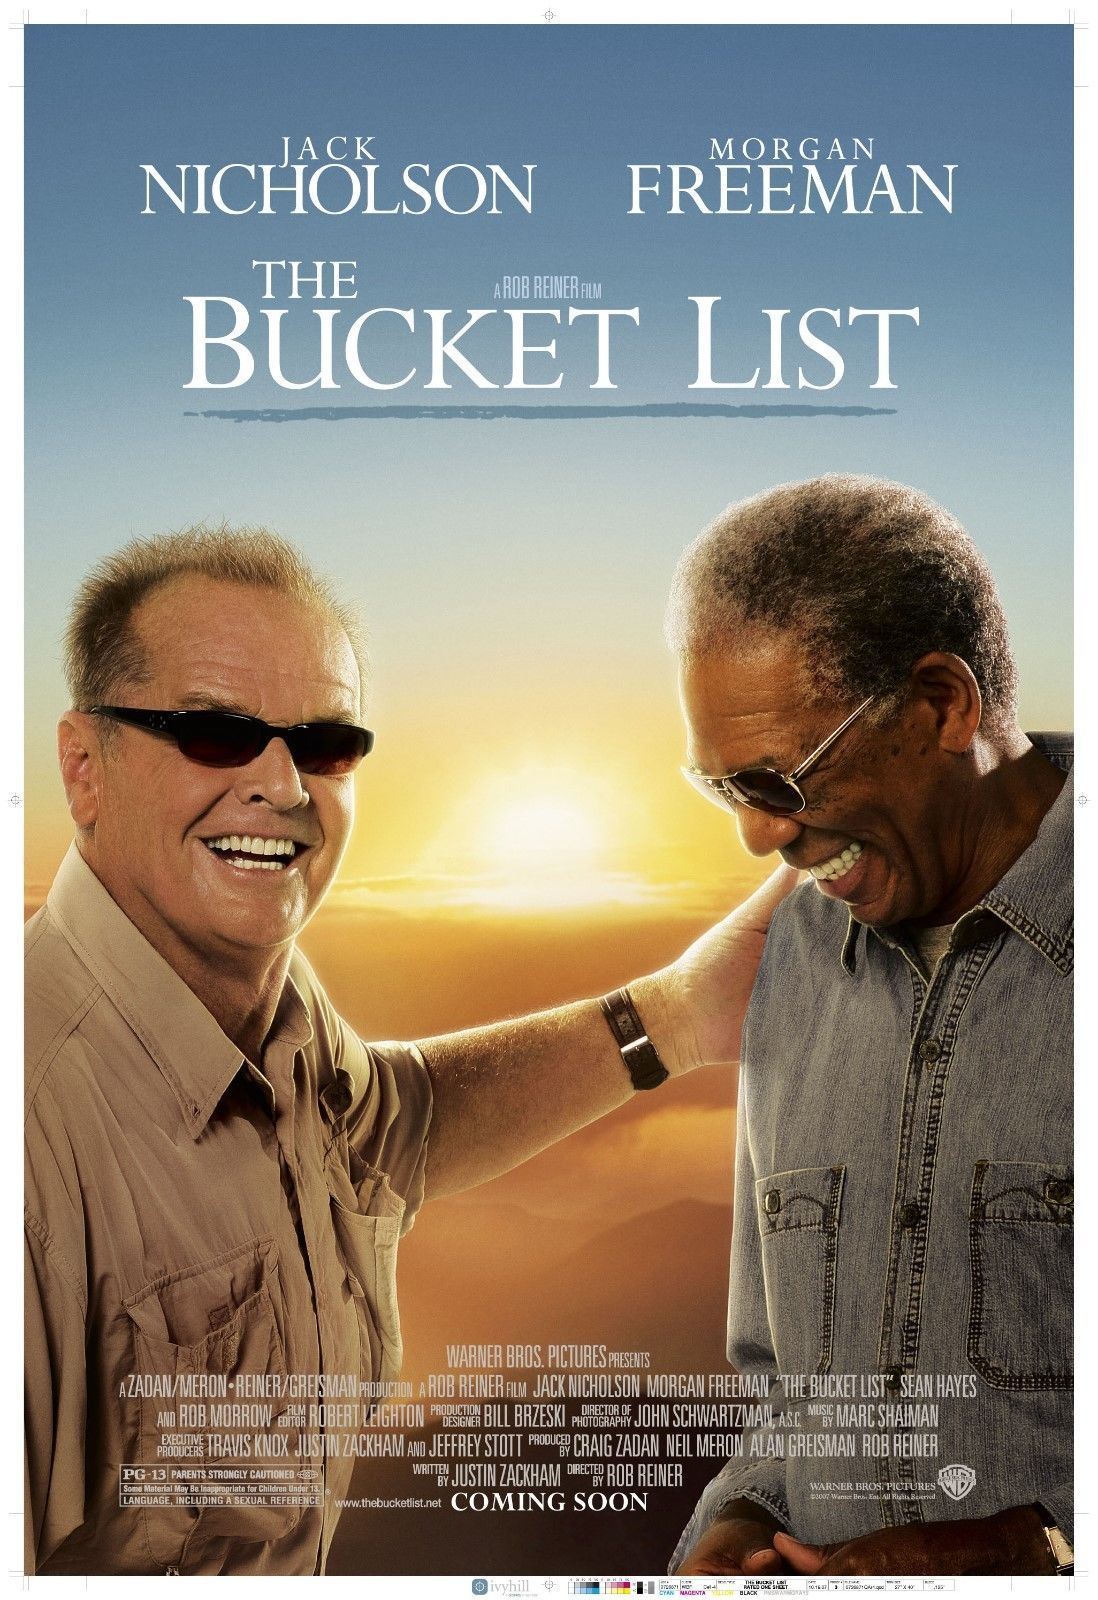 the bucket list movie poster print 11x17 morgan freeman jack